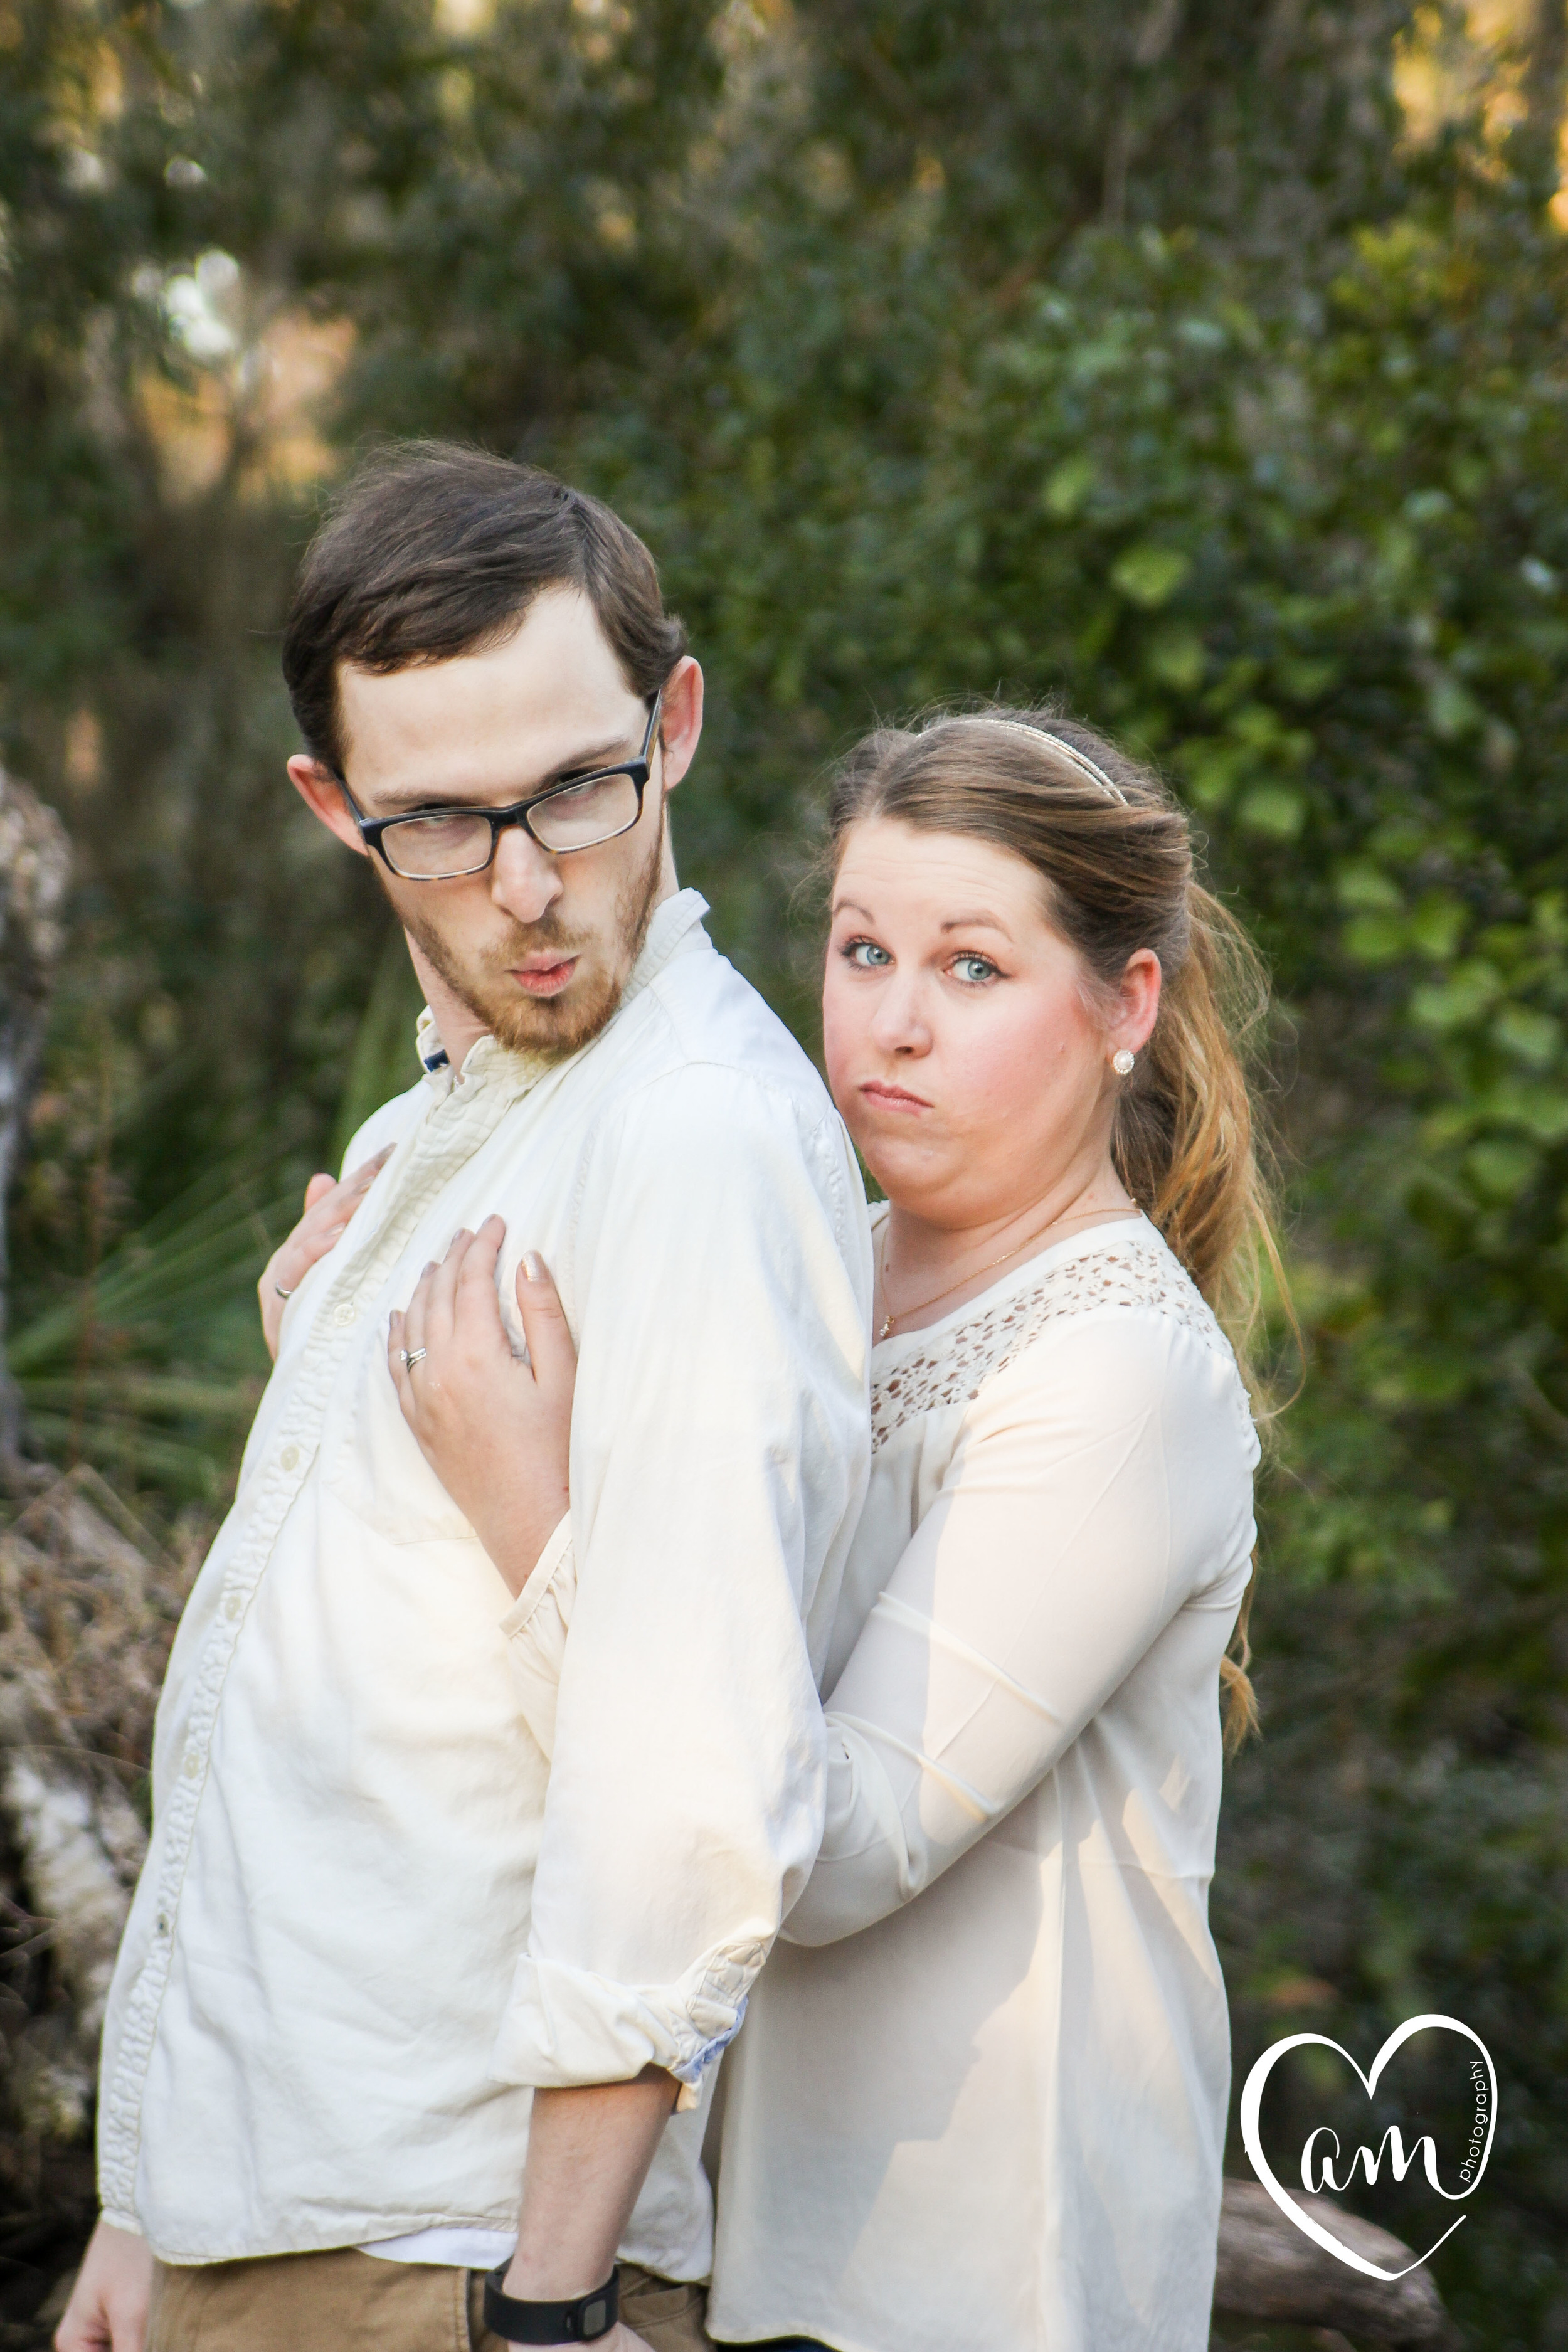 Quirky and silly shingle creek engagement photos